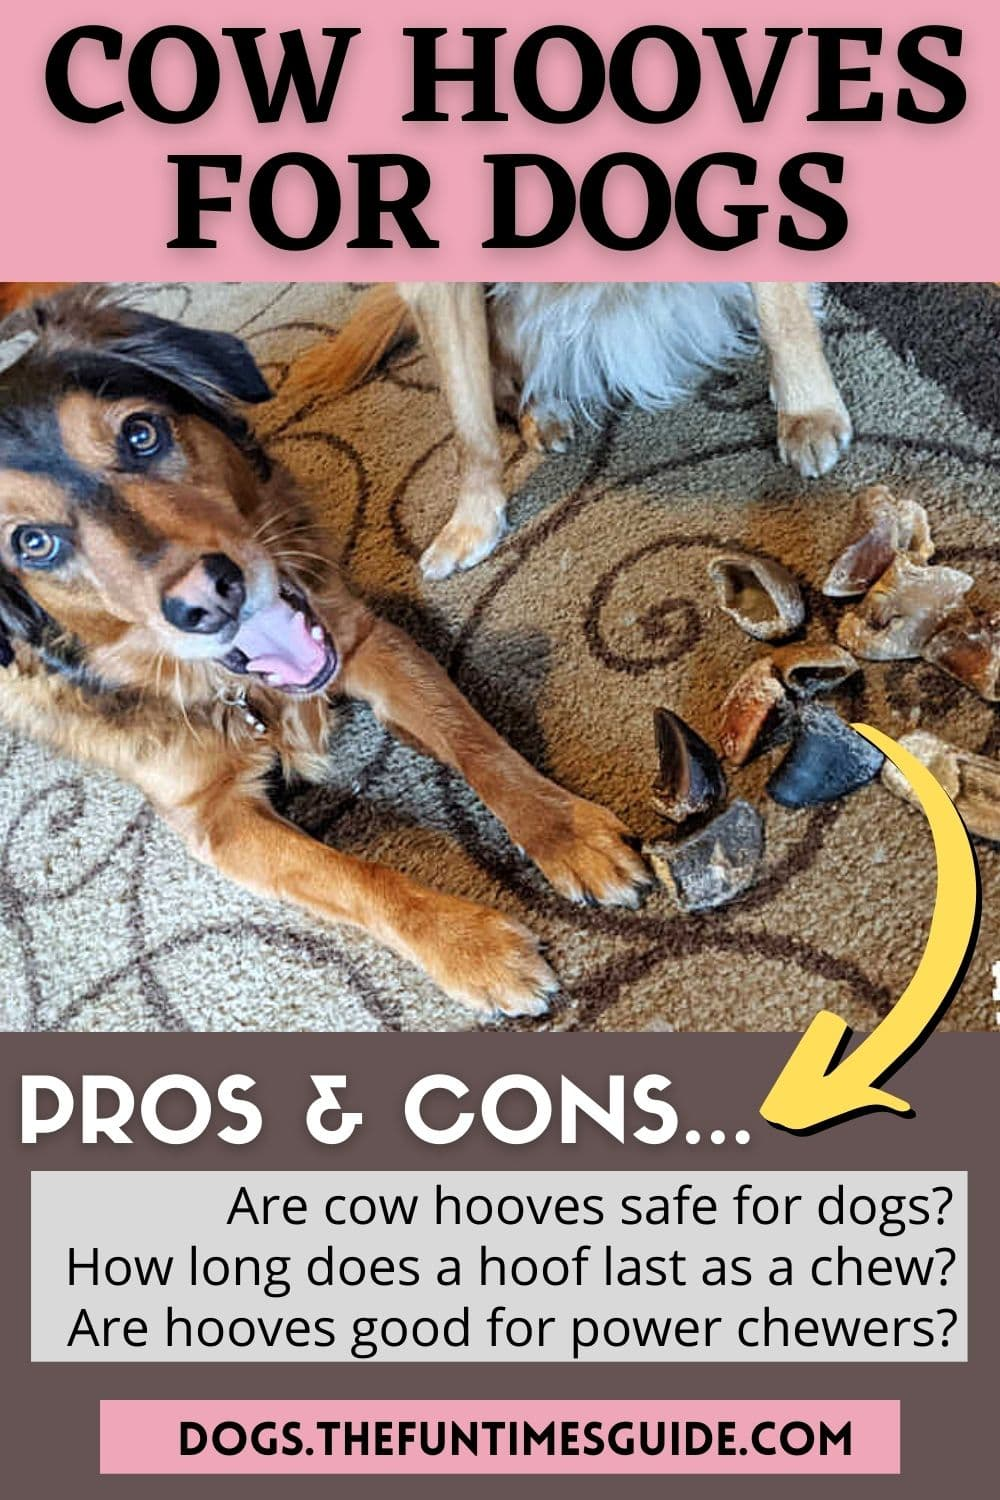 Pros & Cons Of Cow Hooves For Dogs, Where To Buy Them, And What You Need To Know Before Giving Them To Your Dog To Chew On!